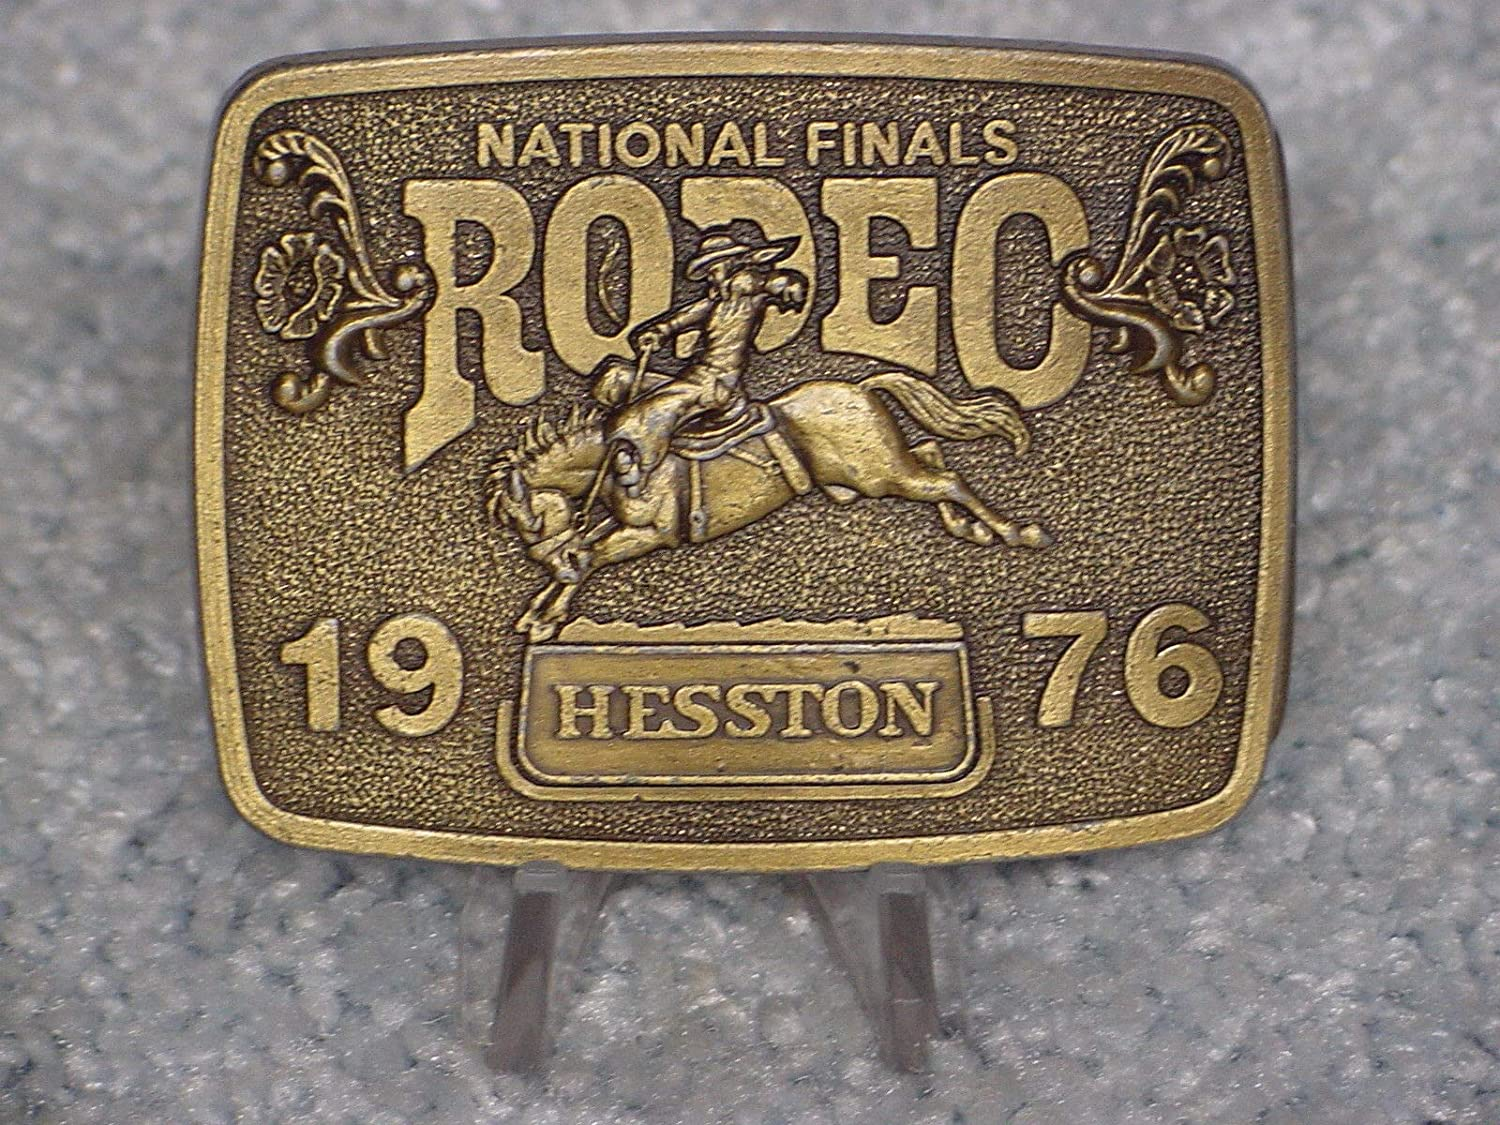 Vintage 1989 Hesston National Finals Rodeo Youth Size Belt Buckle FREE SHIPPING!